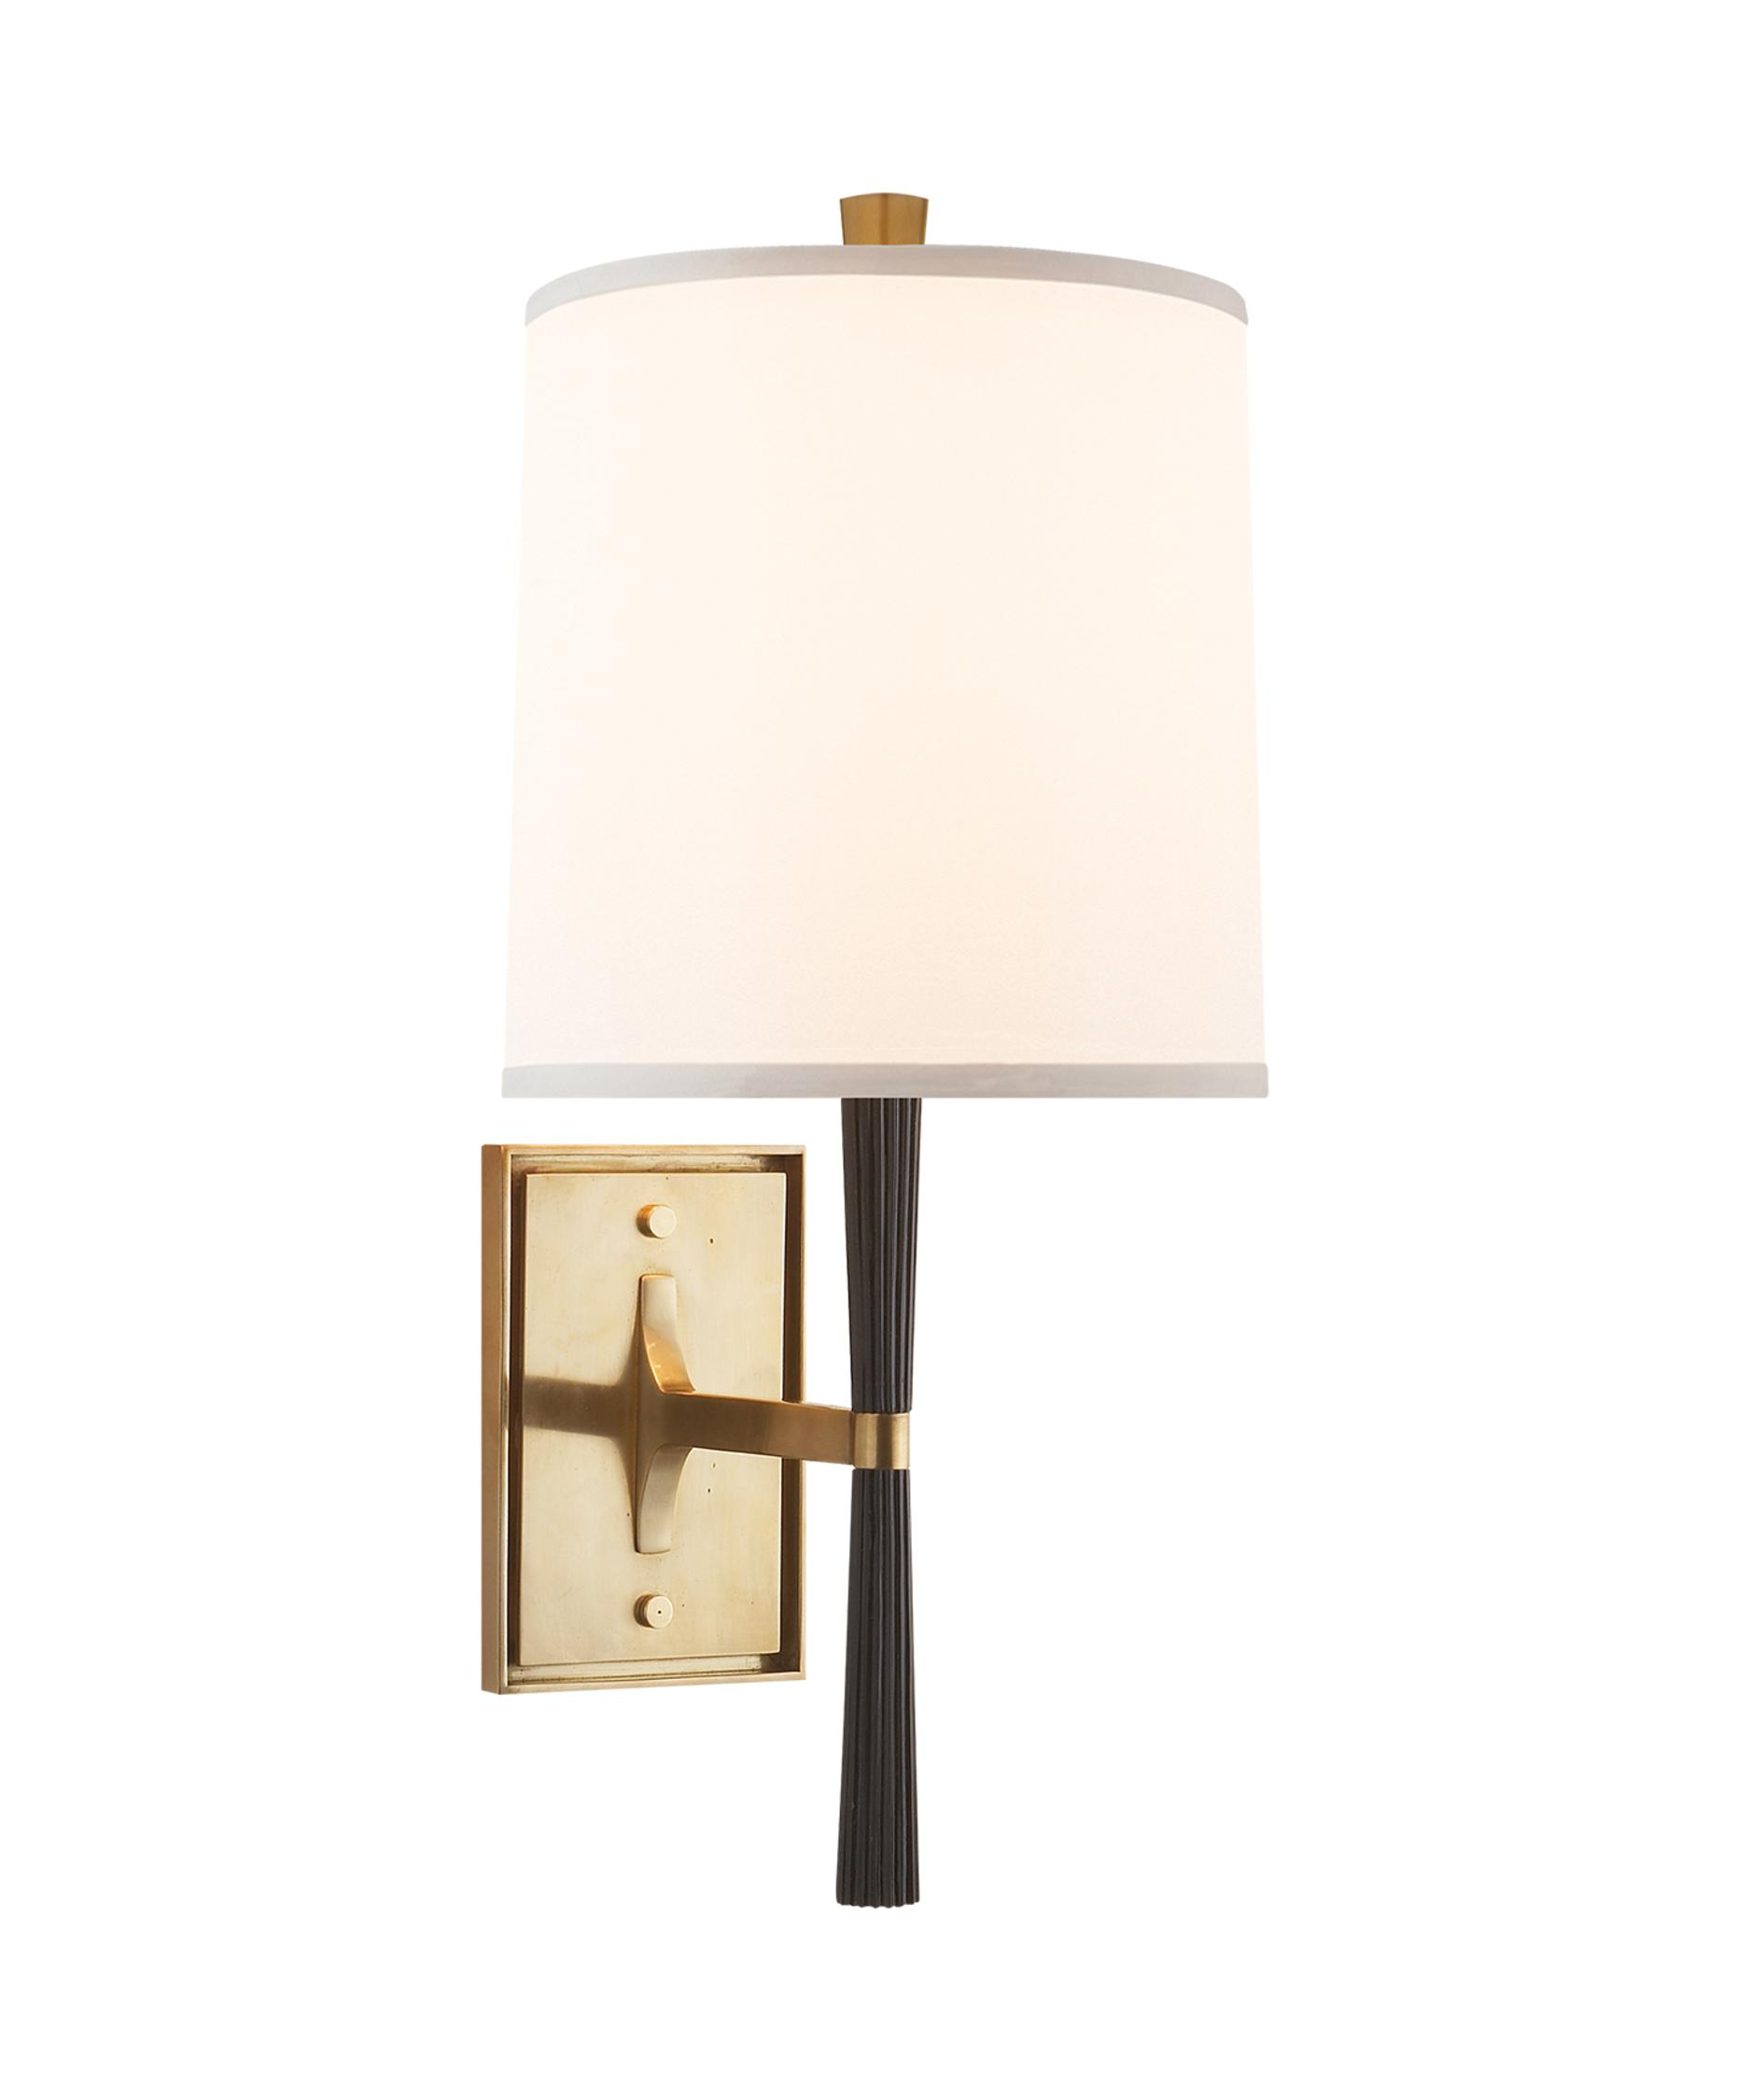 Barbara Barry Cabinet Visual Comfort Barbara Barry Refined Rib 8 Inch Wide Wall Sconce